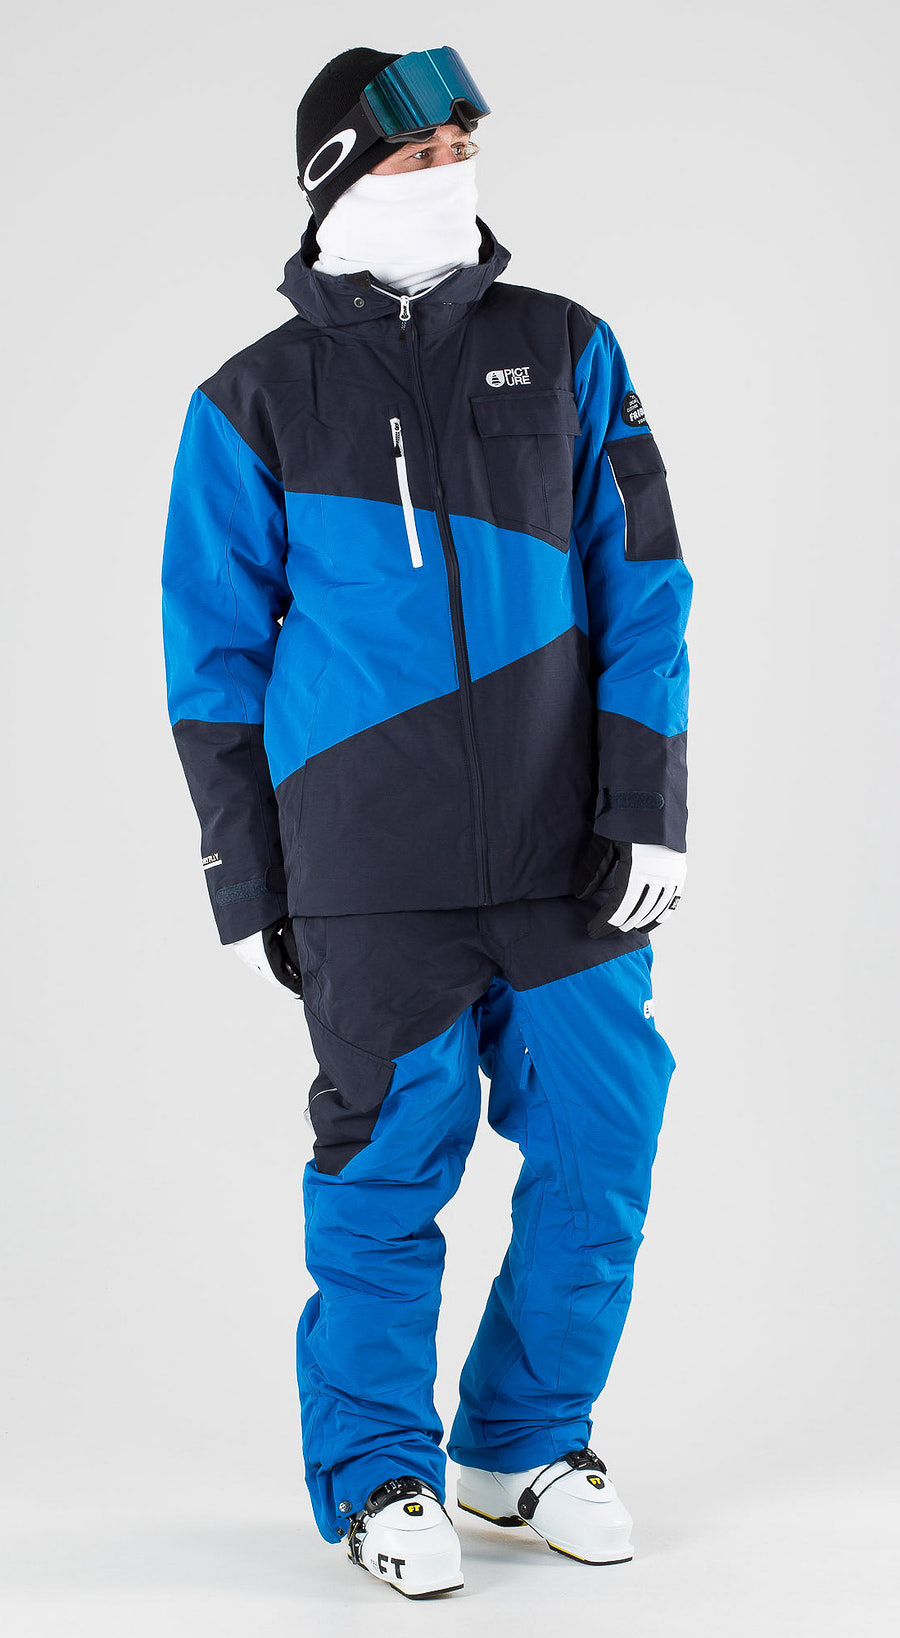 Picture Styler Blue Ski clothing Multi